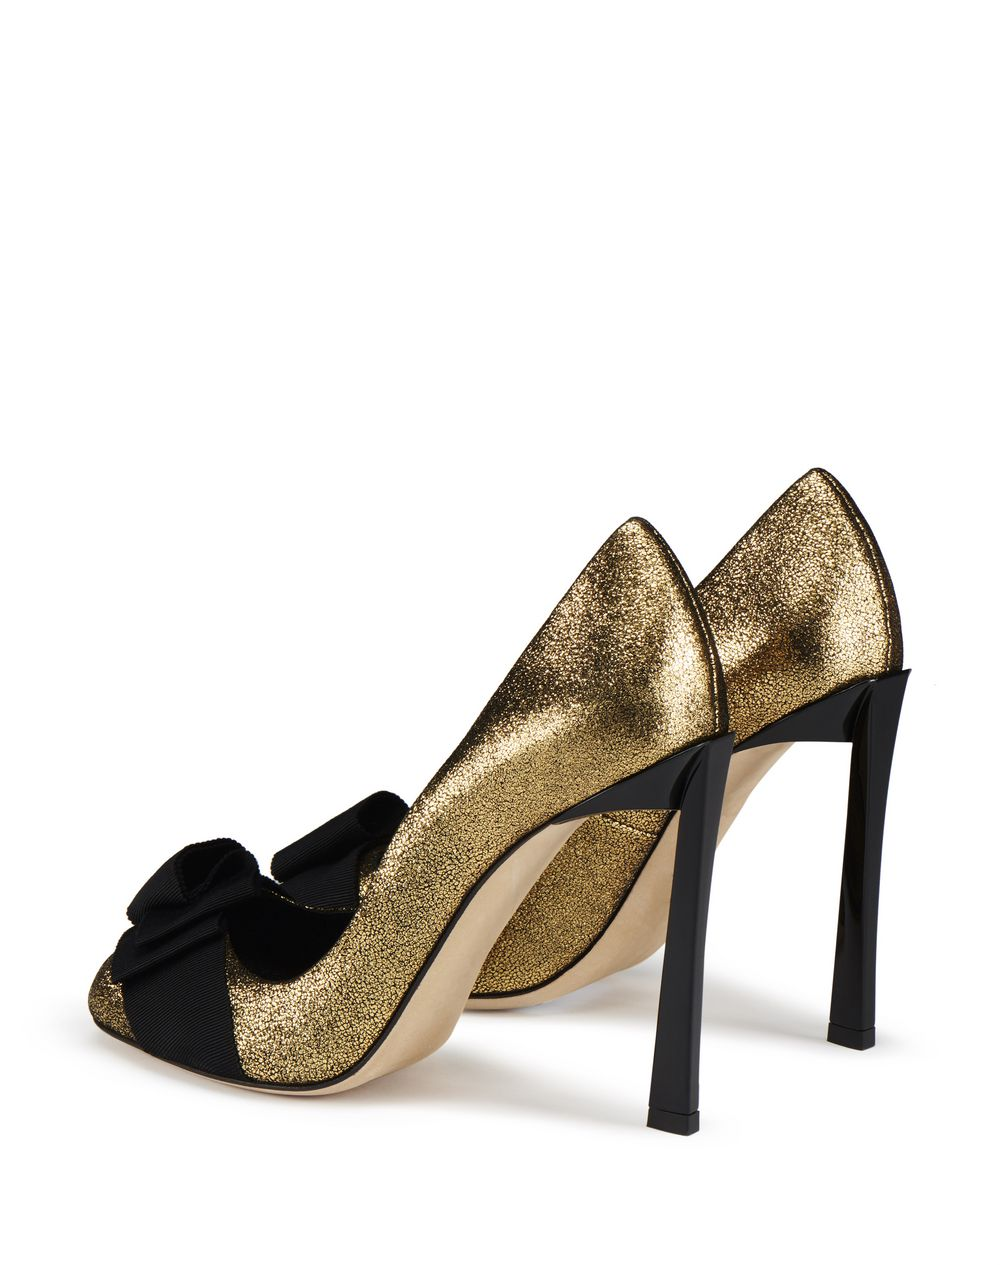 PEEP TOE PUMP WITH GOLD BOW - Lanvin